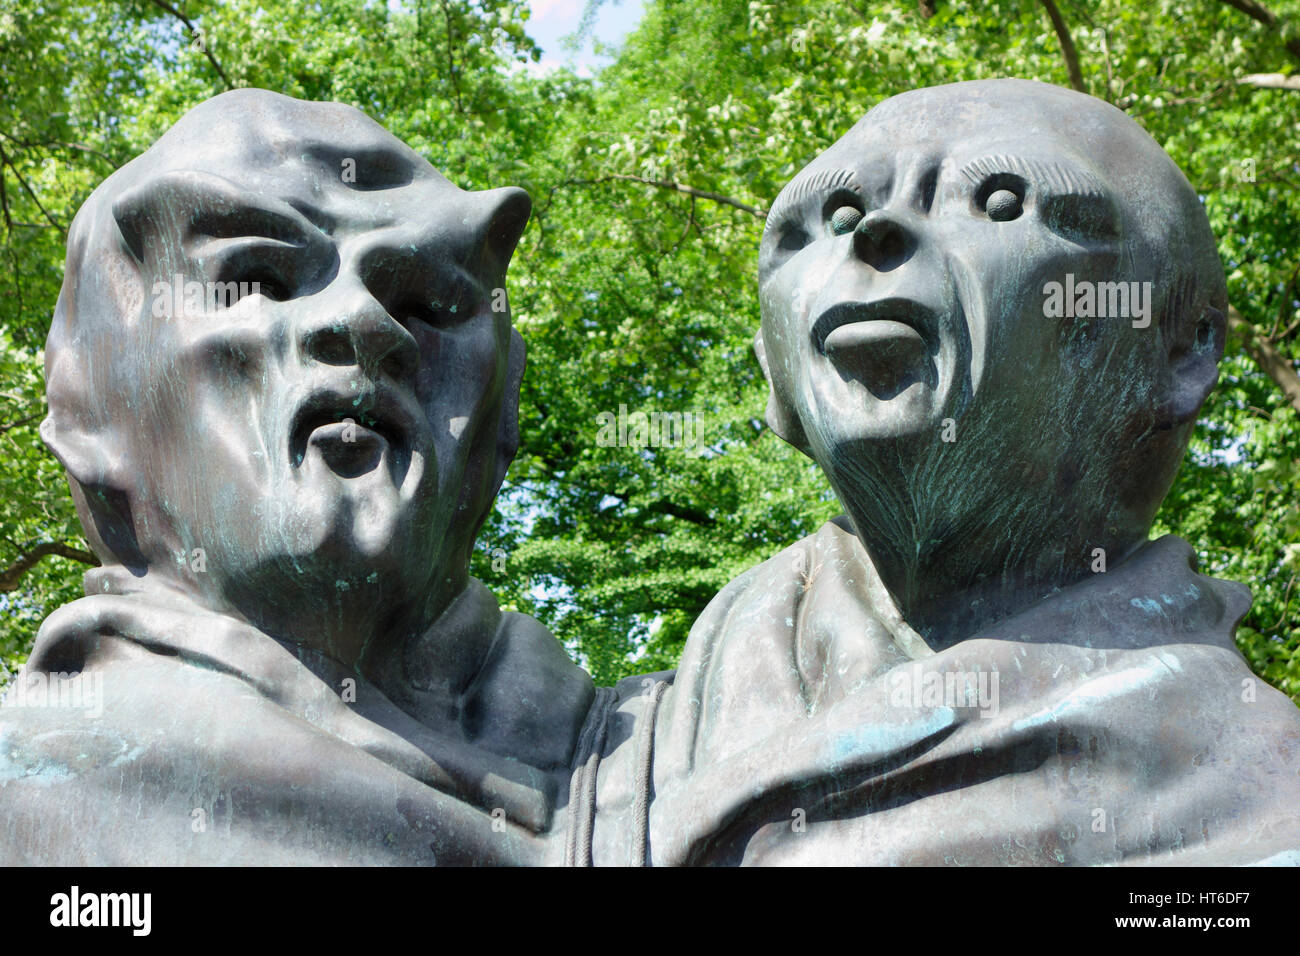 Thomas Schutte, 'United Enemies'. Central Park, Manhattan, New York City, USA - Stock Image